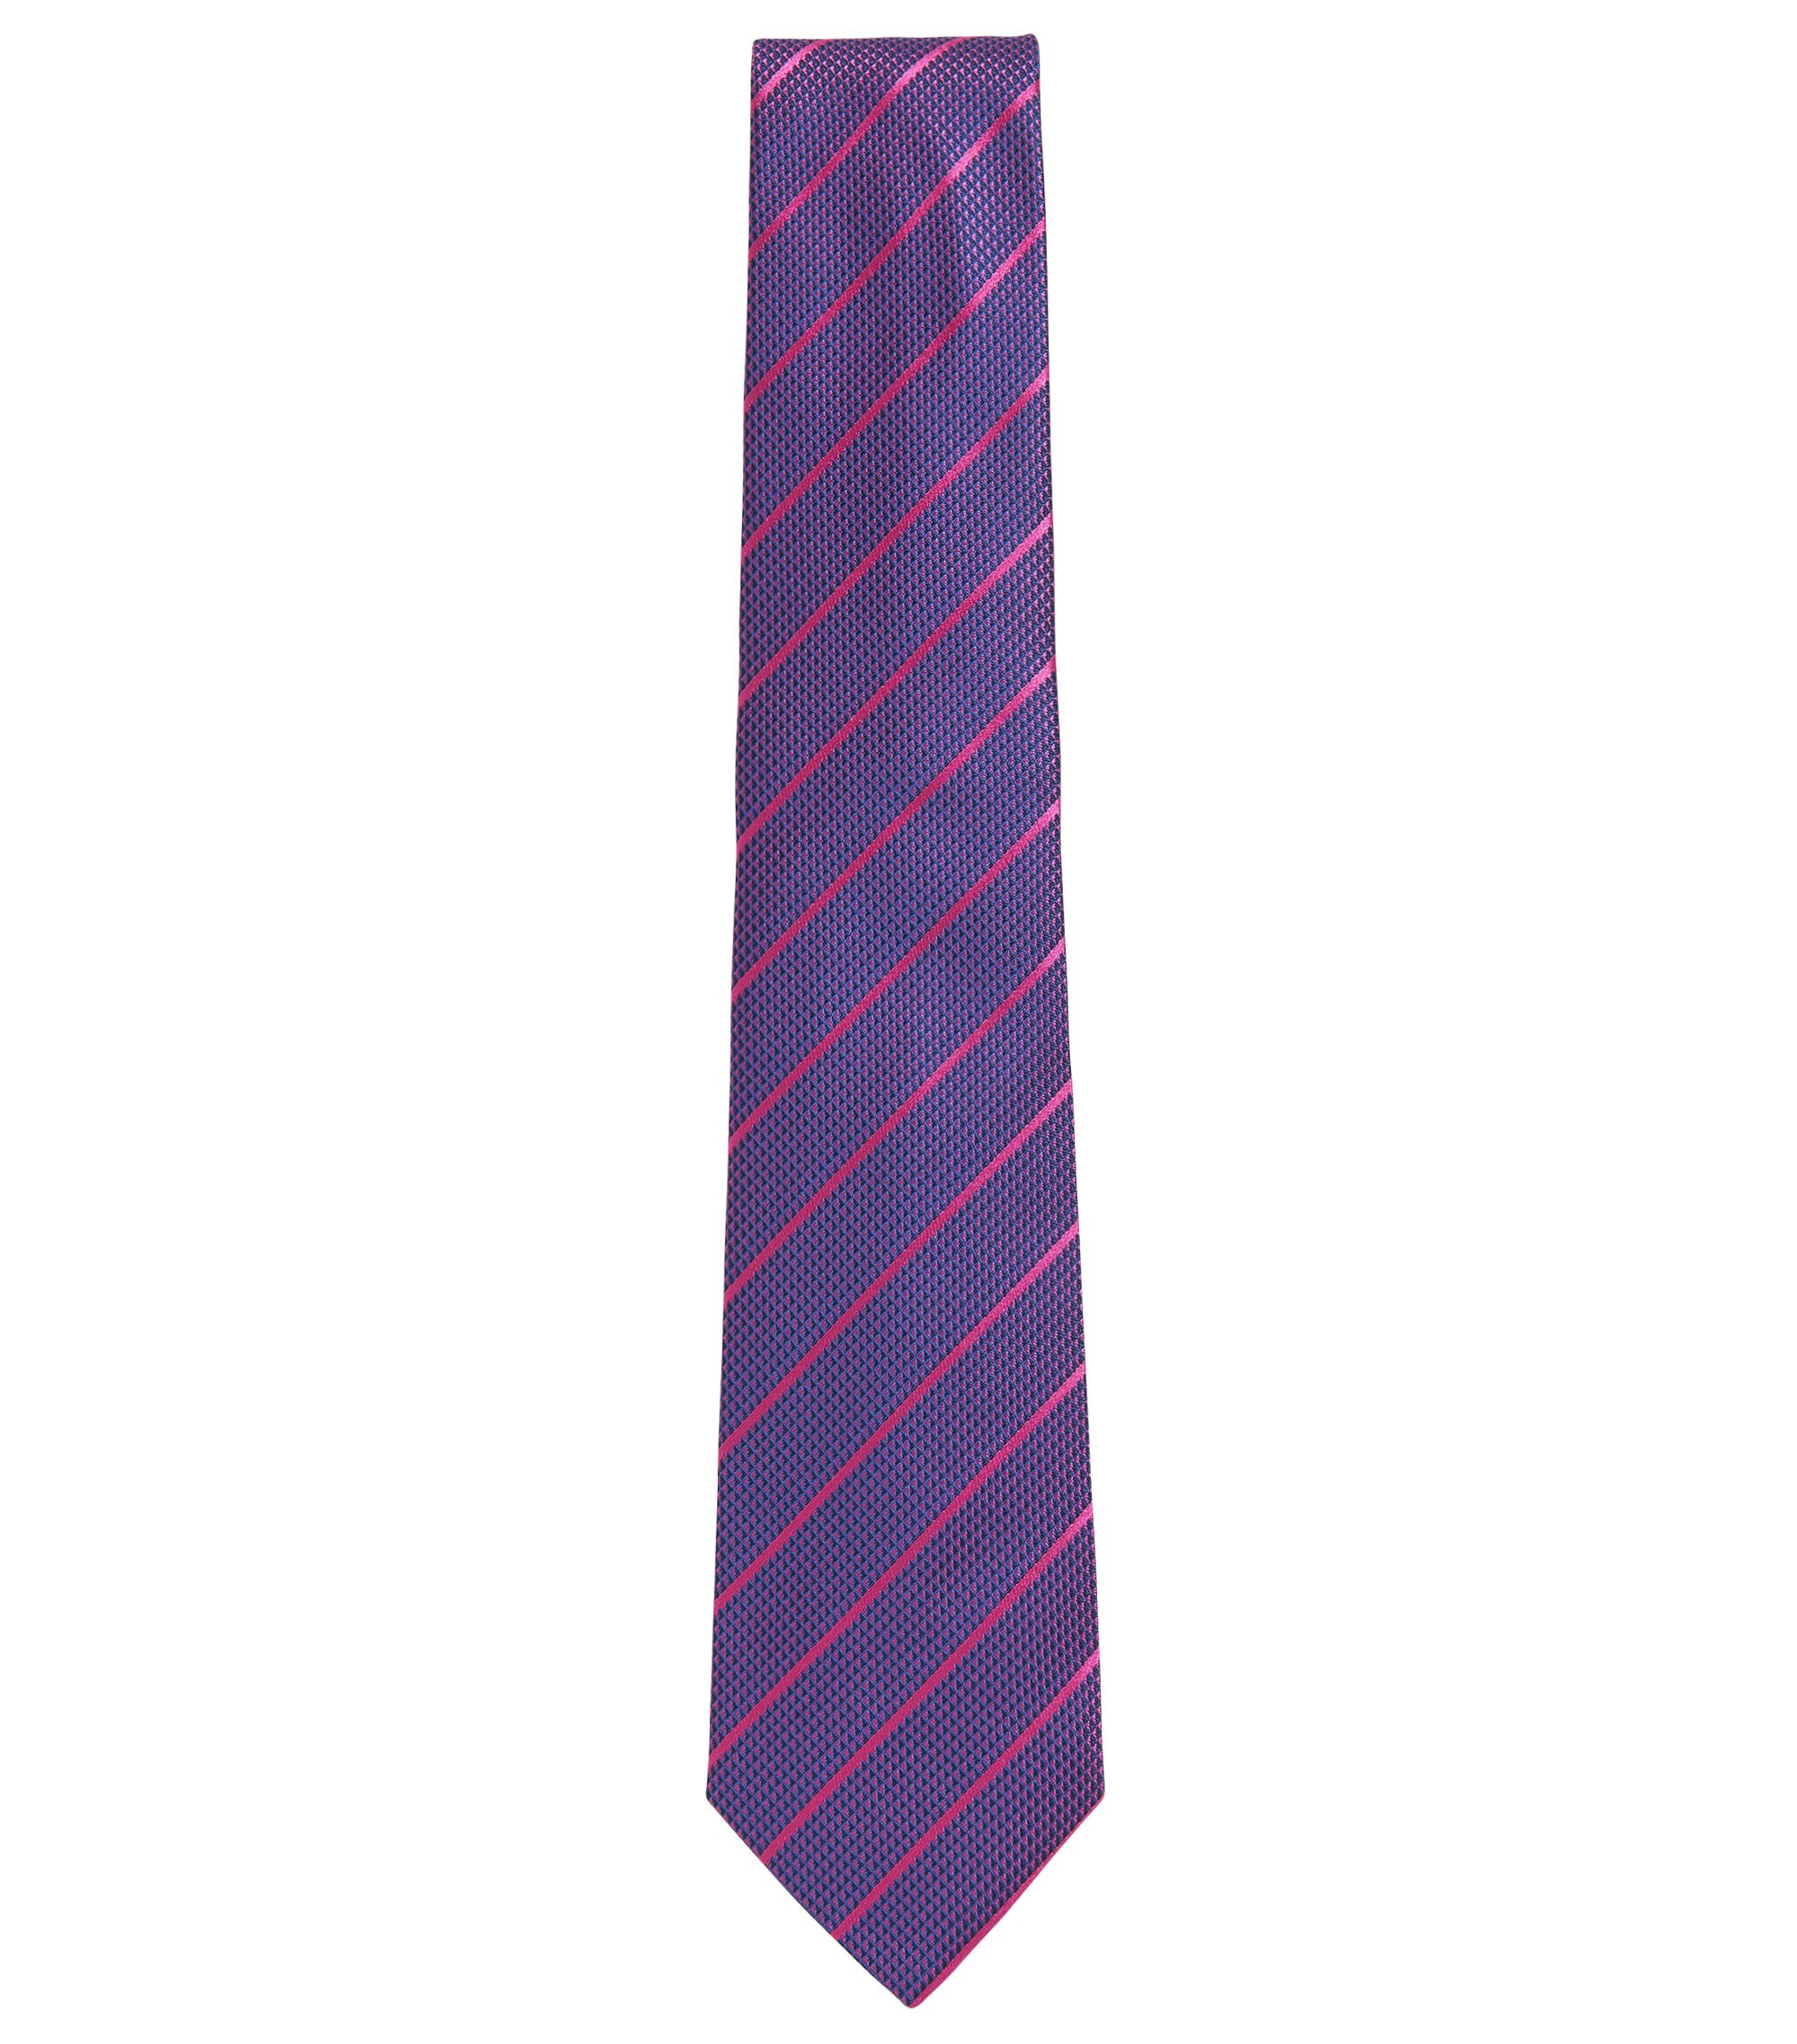 BOSS Tailored Striped Italian Silk Tie, Dark pink